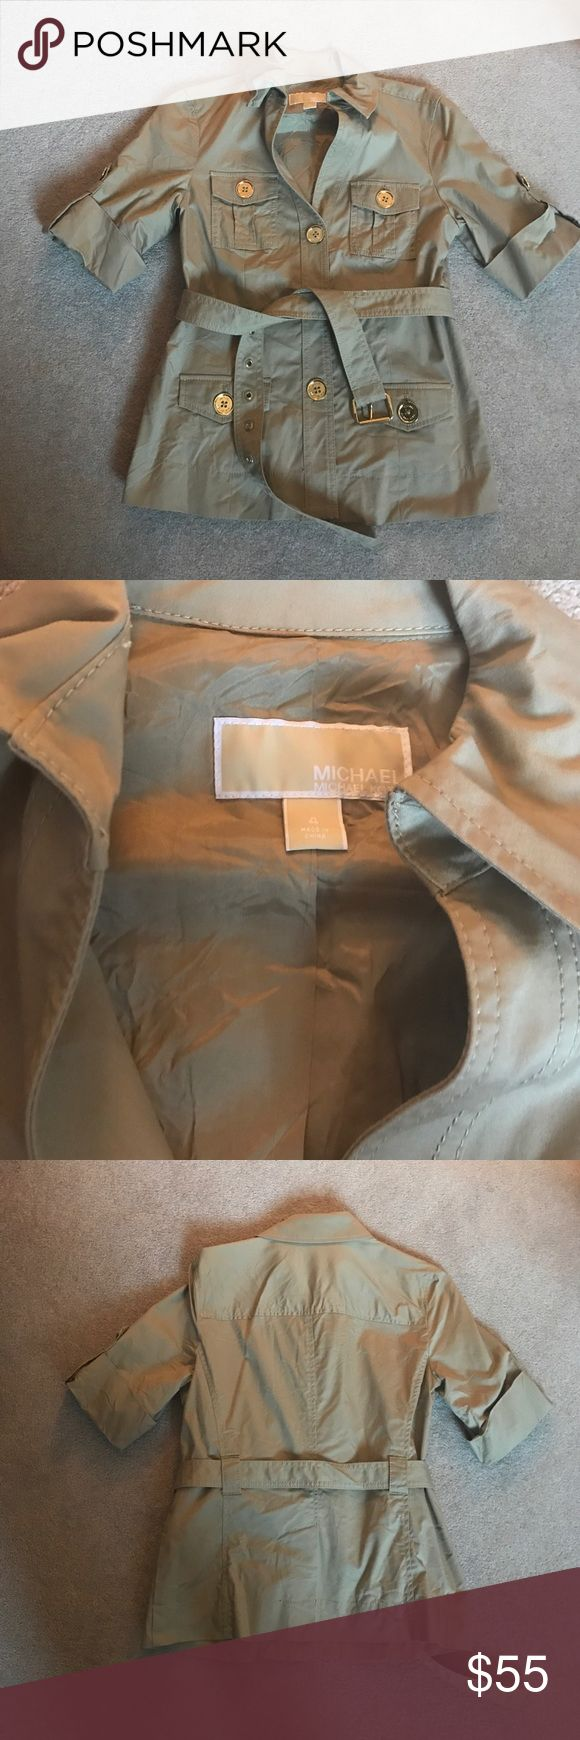 Michael Kors khaki blazer Michael Kors khaki blazer. Only worn twice. No marks. 97% cotton/ 3% spandex. Some fraying on belt (pictured above) ⭐make an offer⭐ Michael Kors Jackets & Coats Blazers